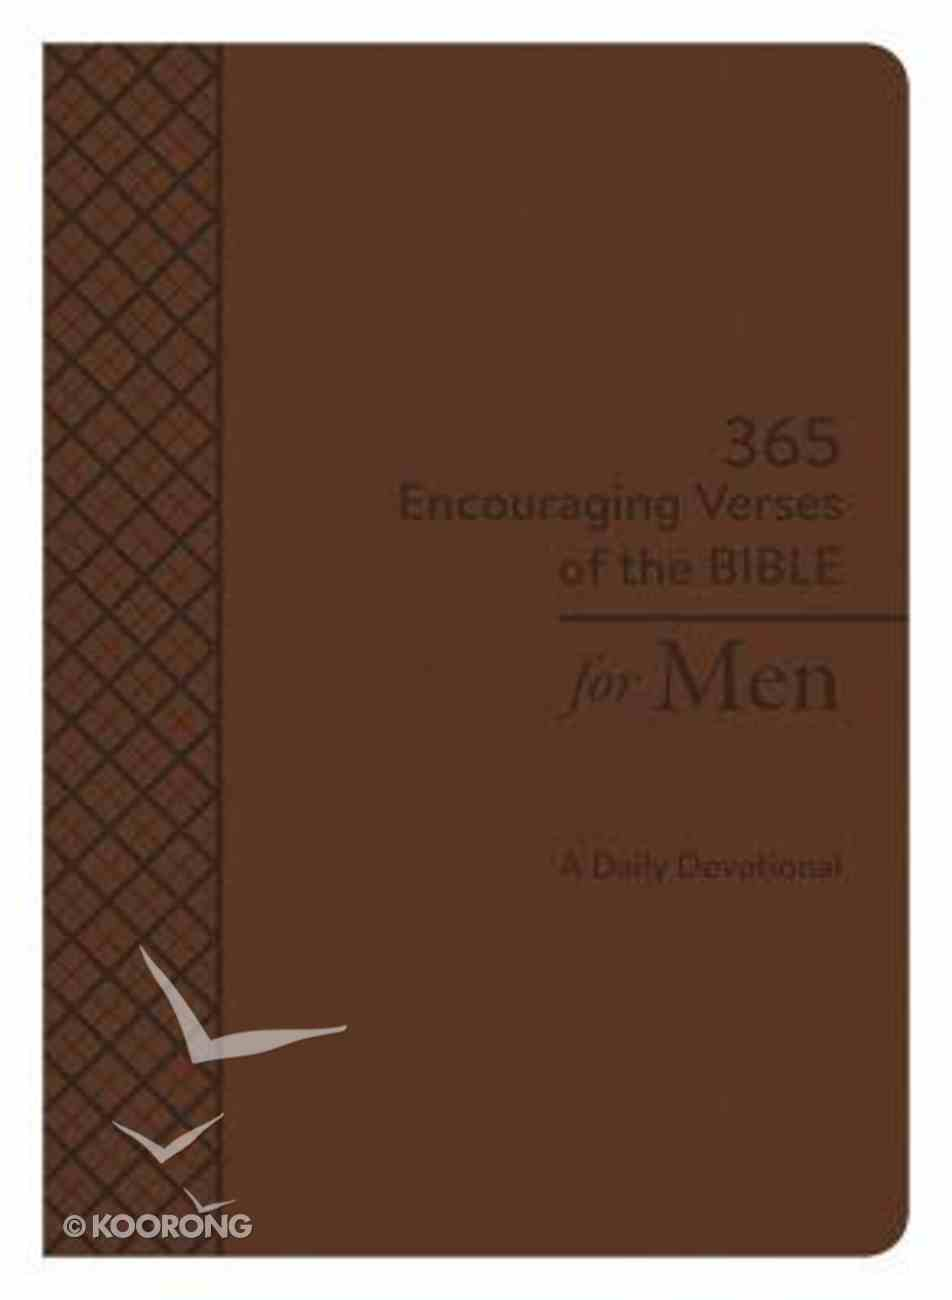 365 Encouraging Verses of the Bible For Men: A Daily Devotional Paperback